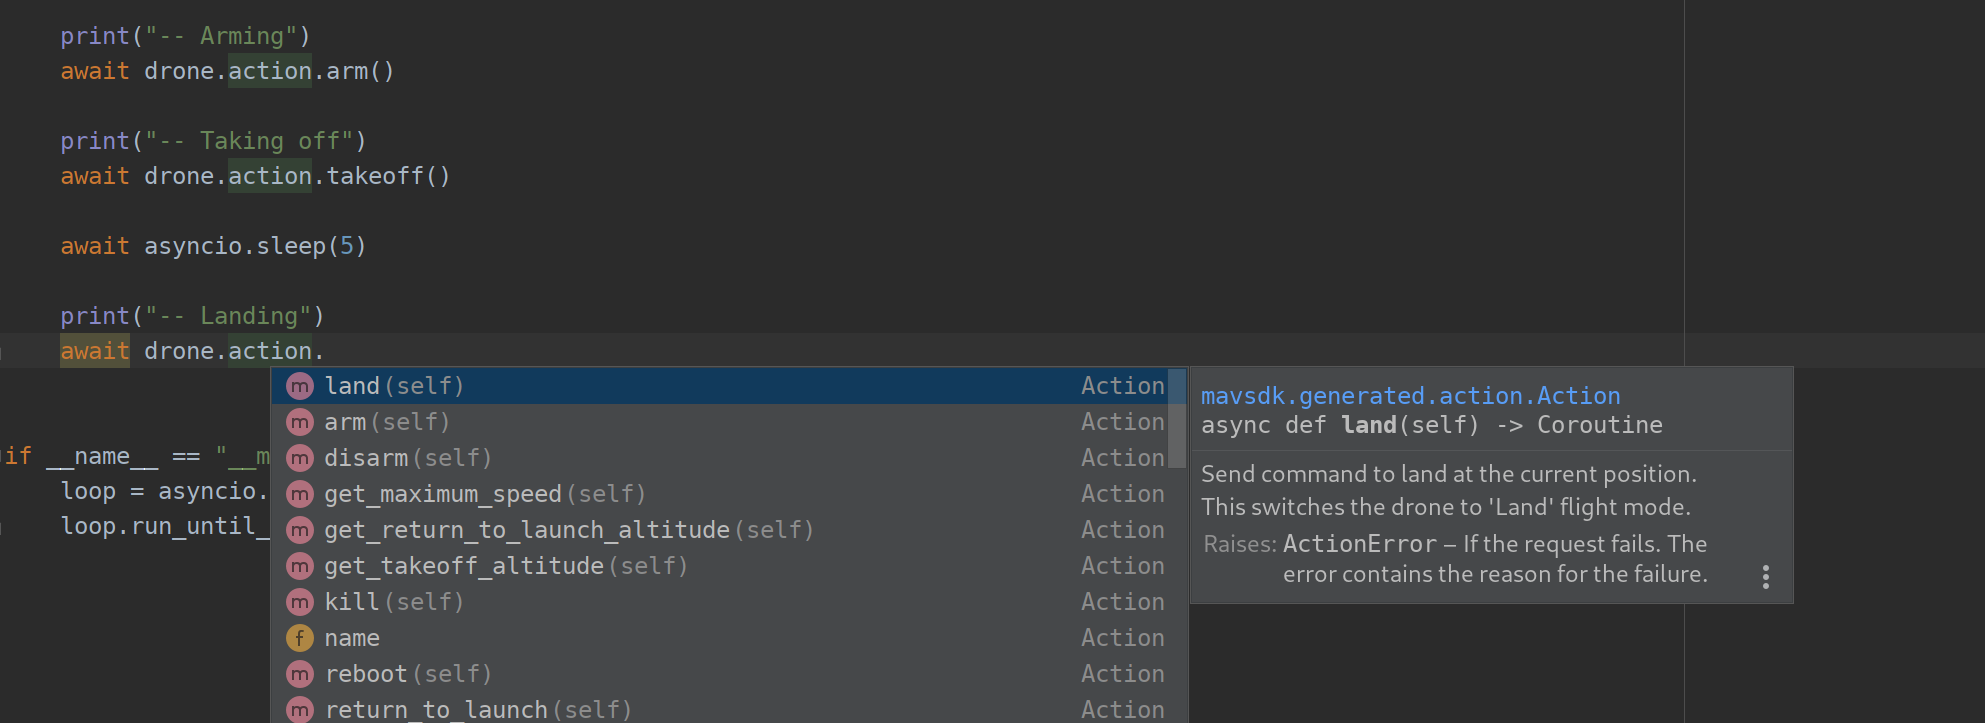 Auto-completion in PyCharm